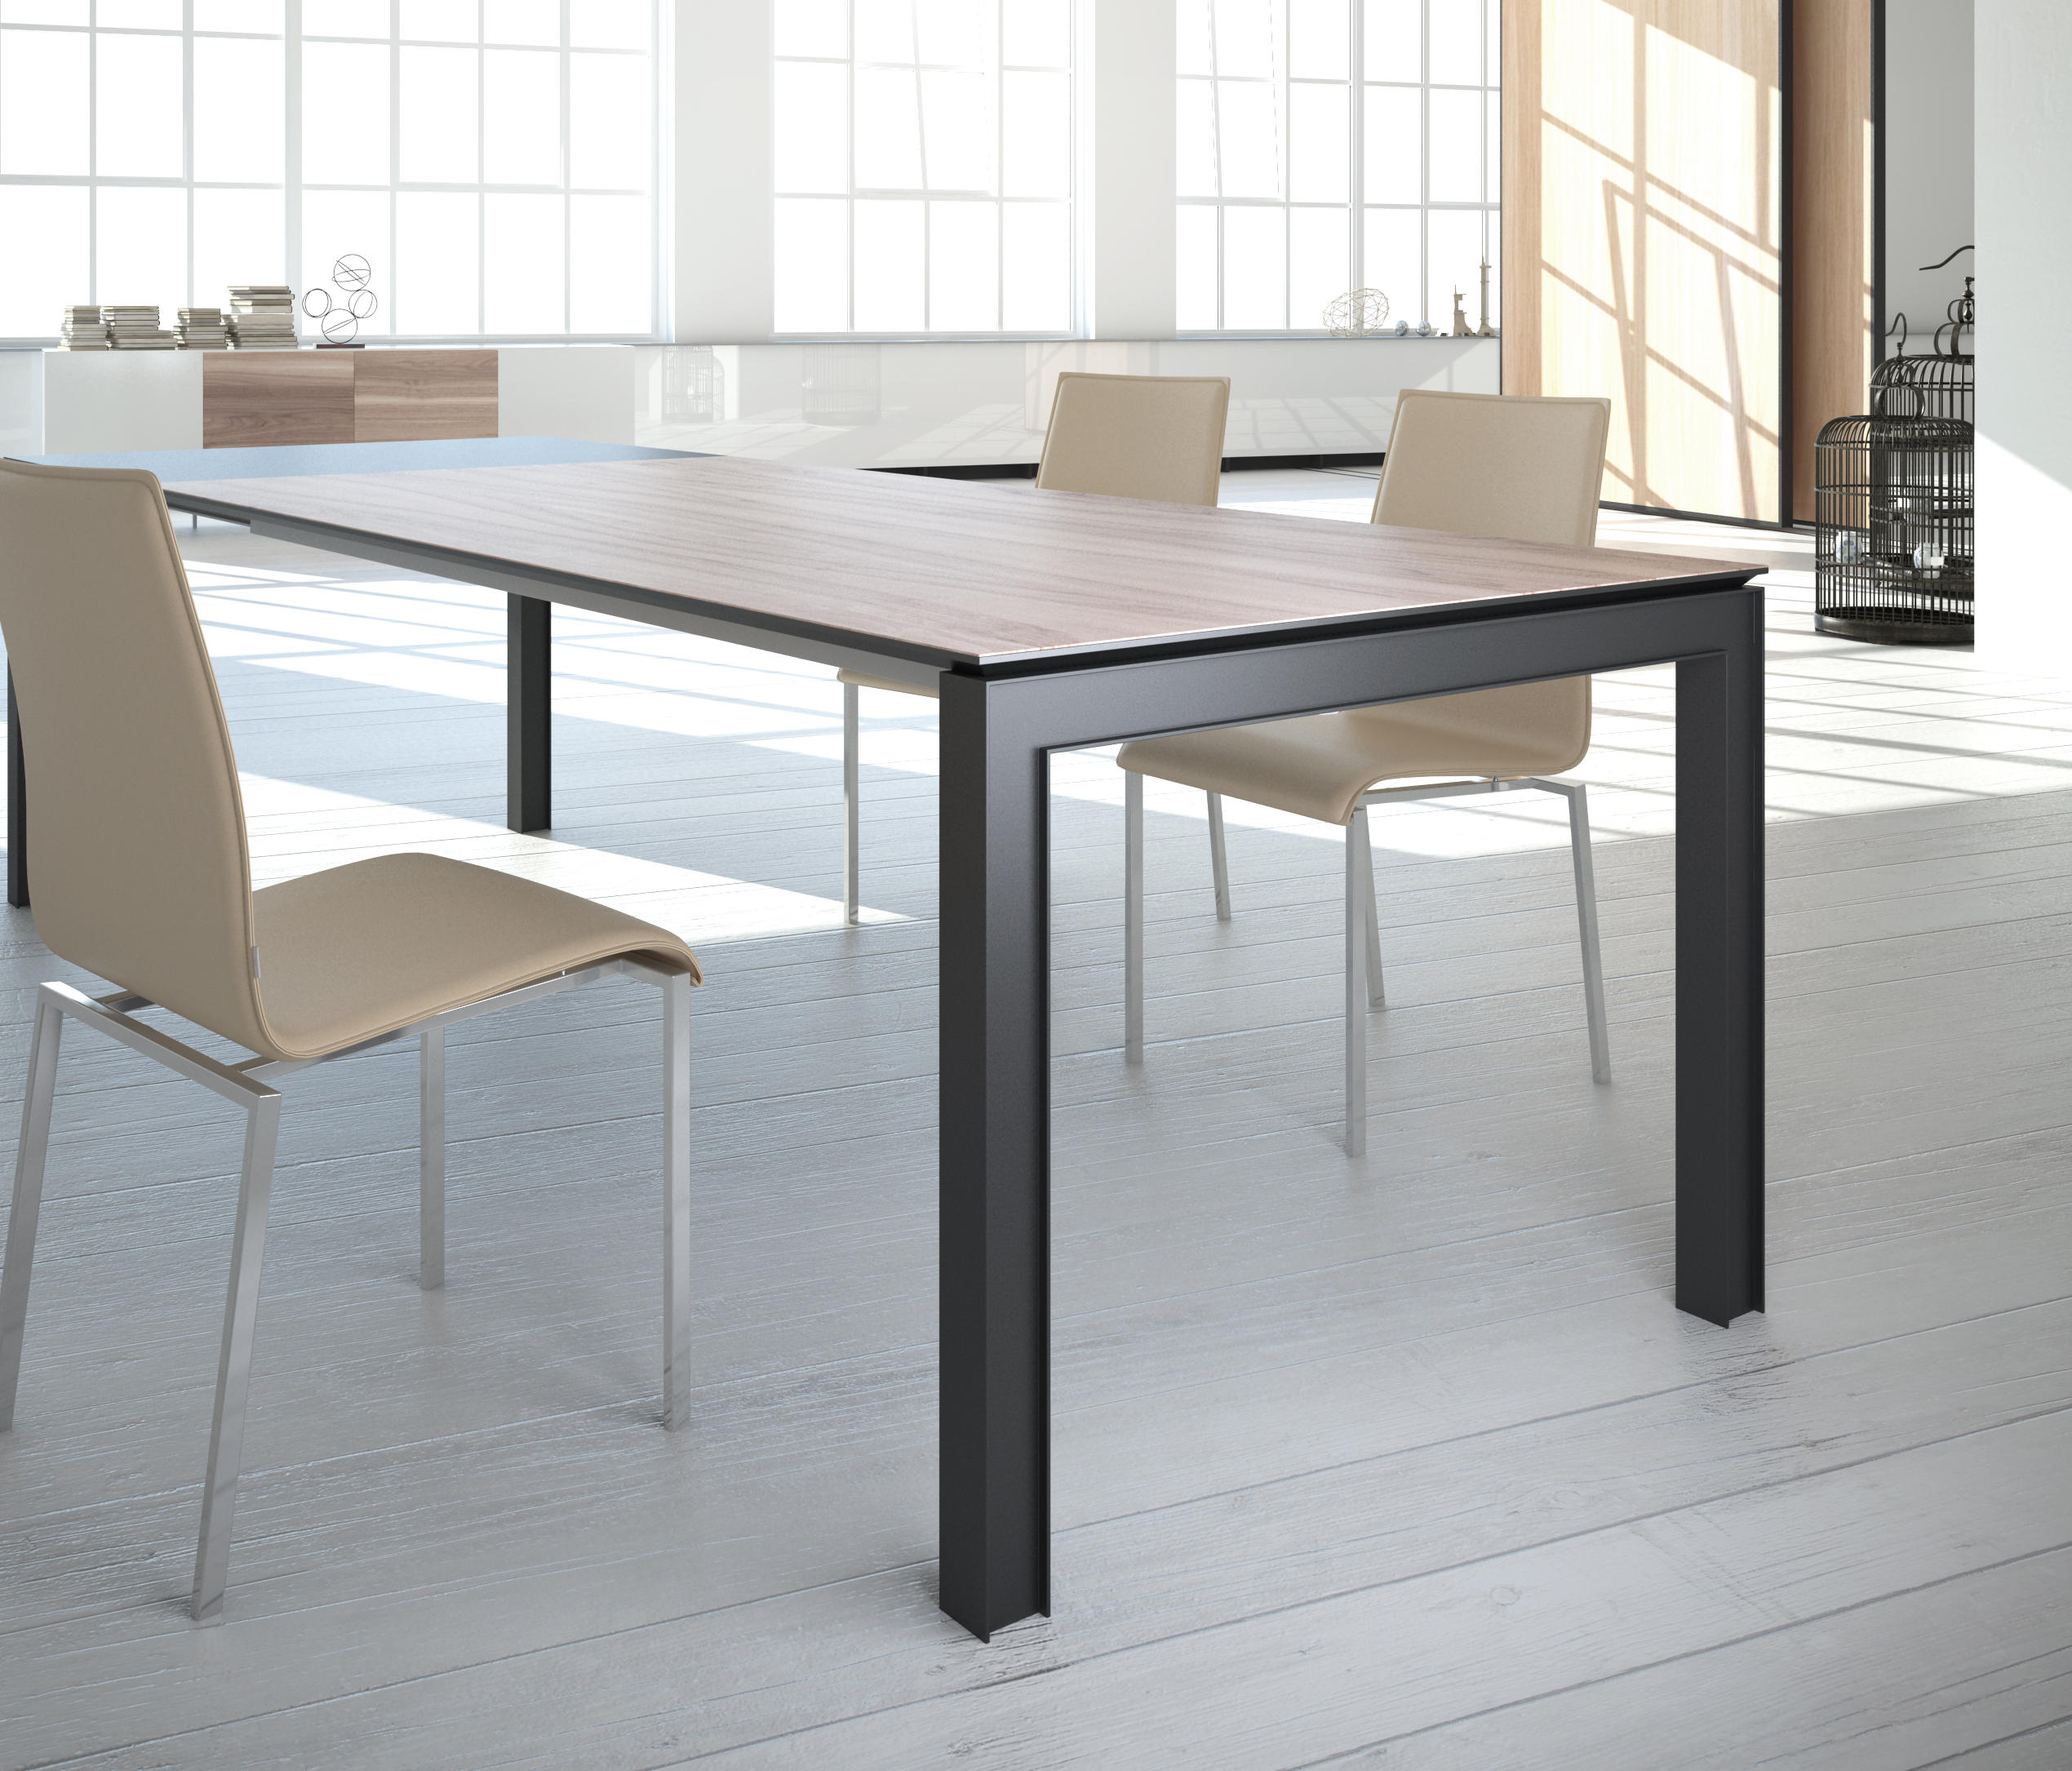 Nao table dining tables from willisau architonic for Table table restaurants locations